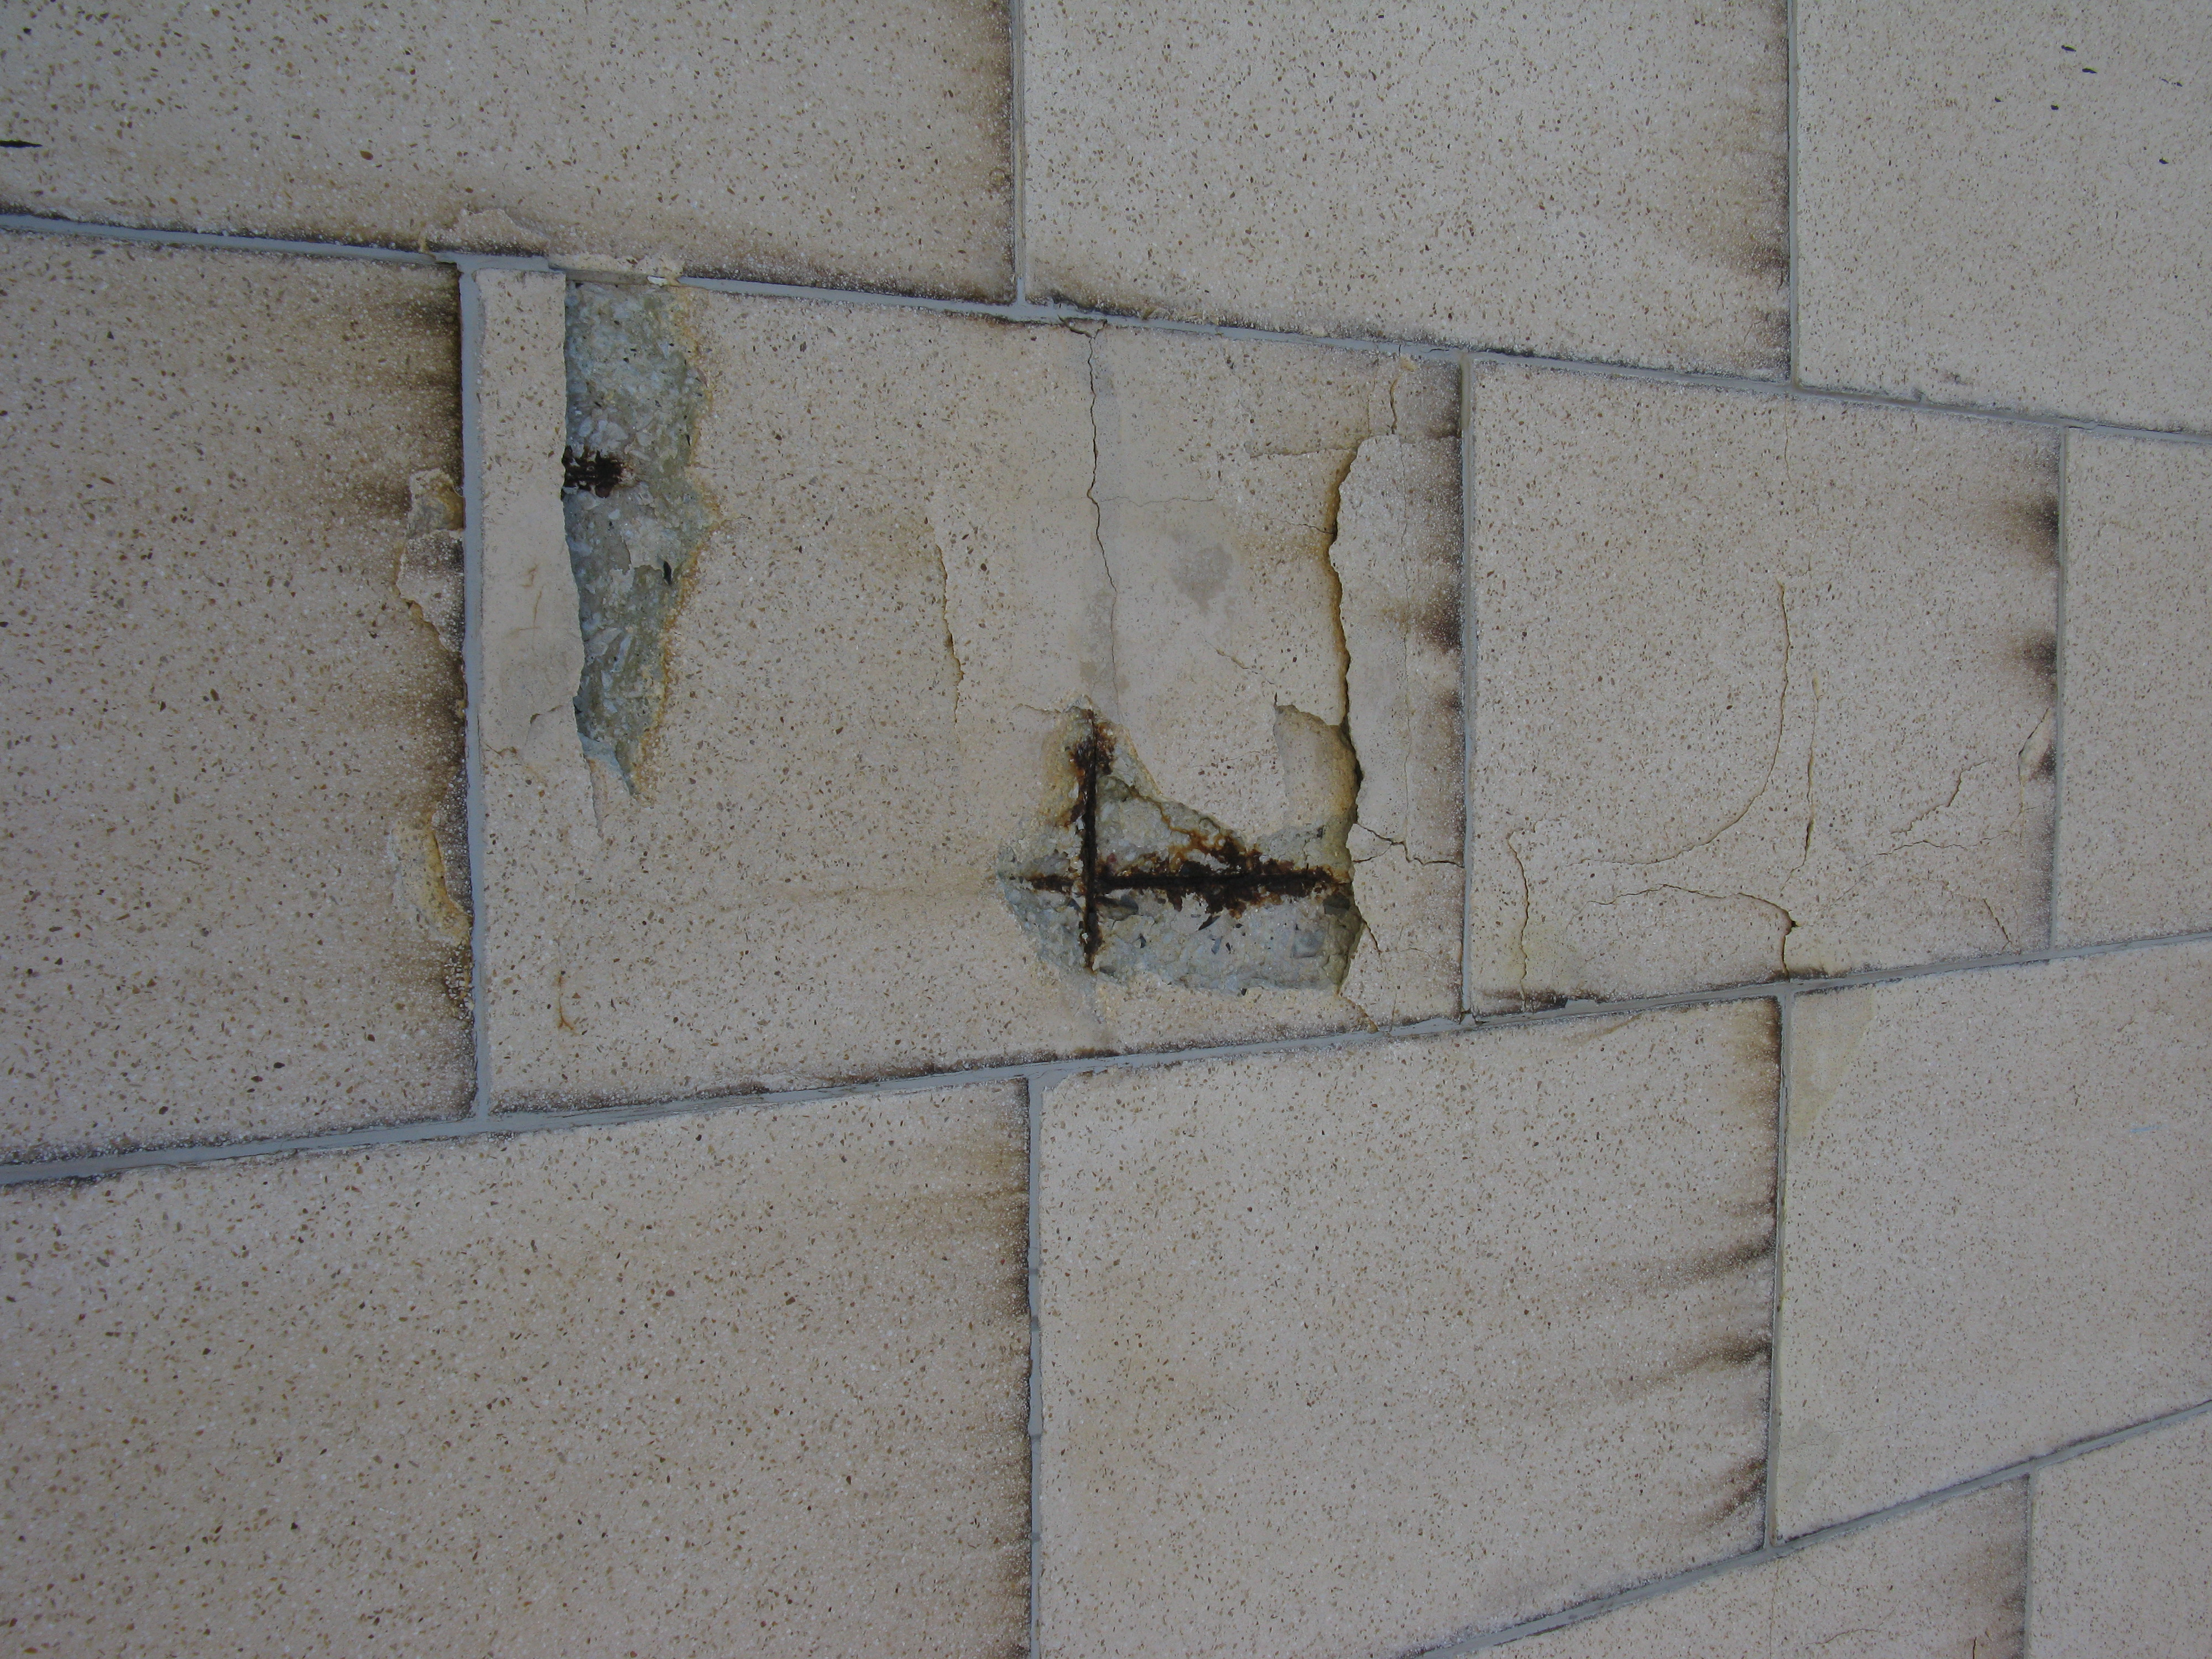 foundation leak repair in Dunwoody GA 30346